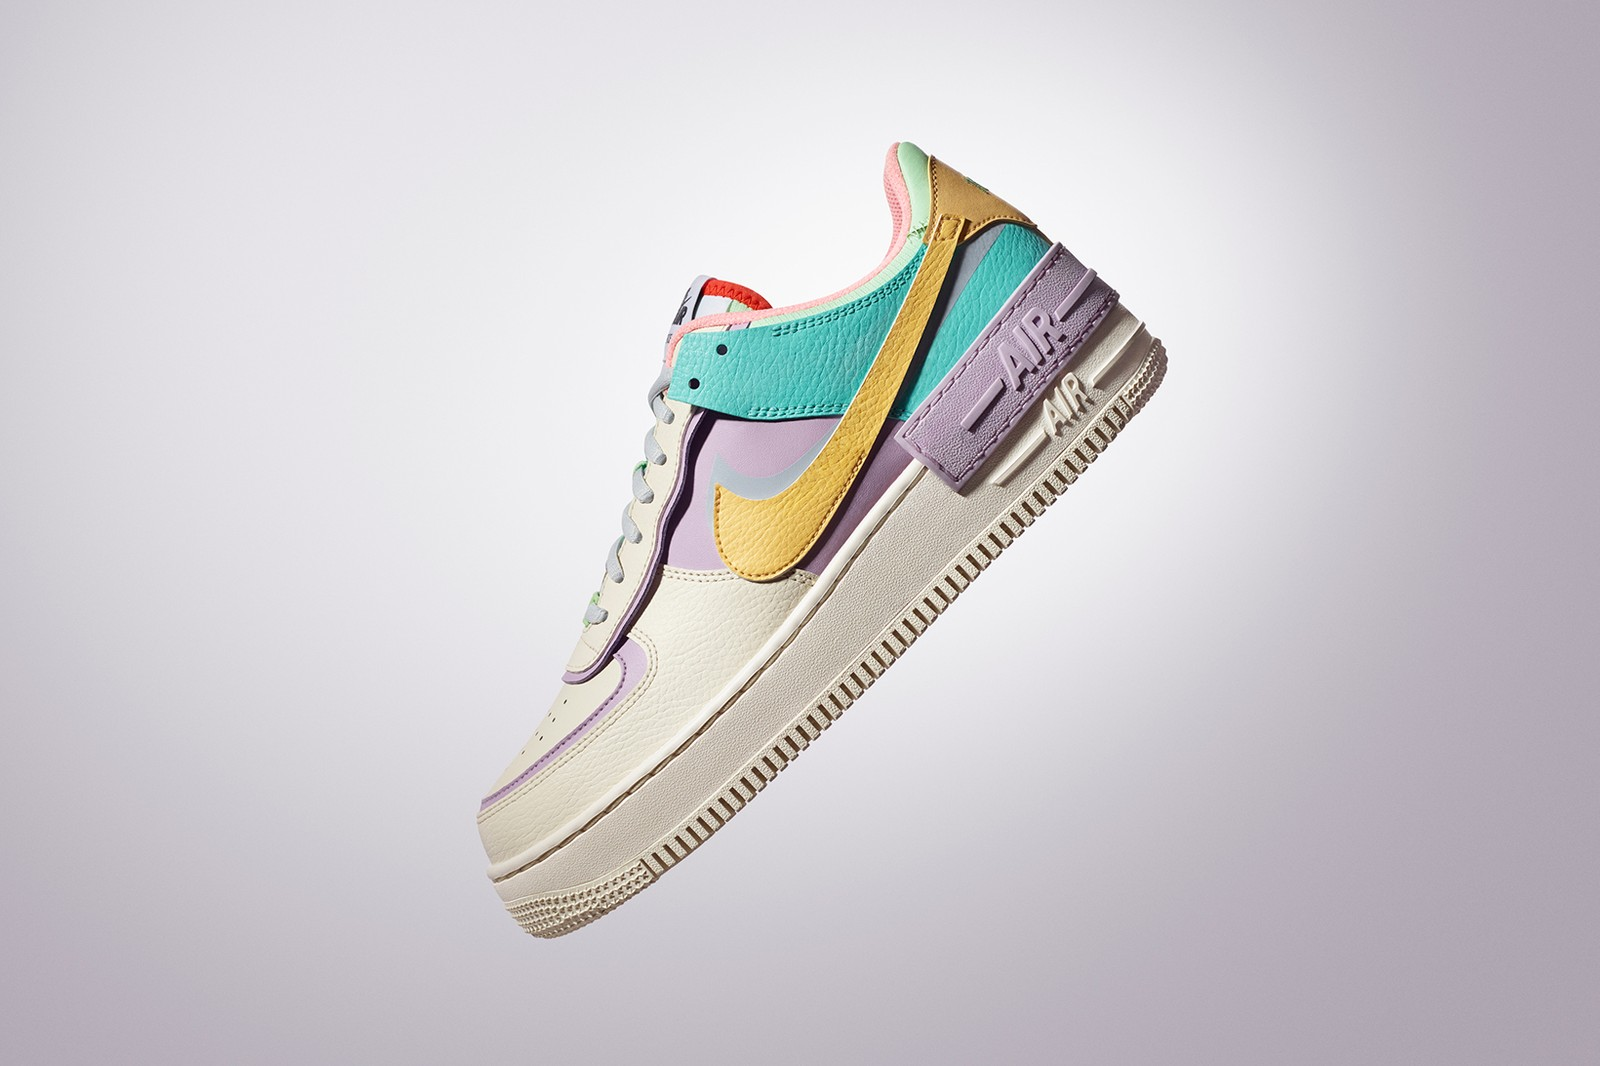 Where to Buy Nike New Air Force 1 Shadow womens sneakers trainers vans breast cancer awareness dior makeup foundation mac lipstick maleficent